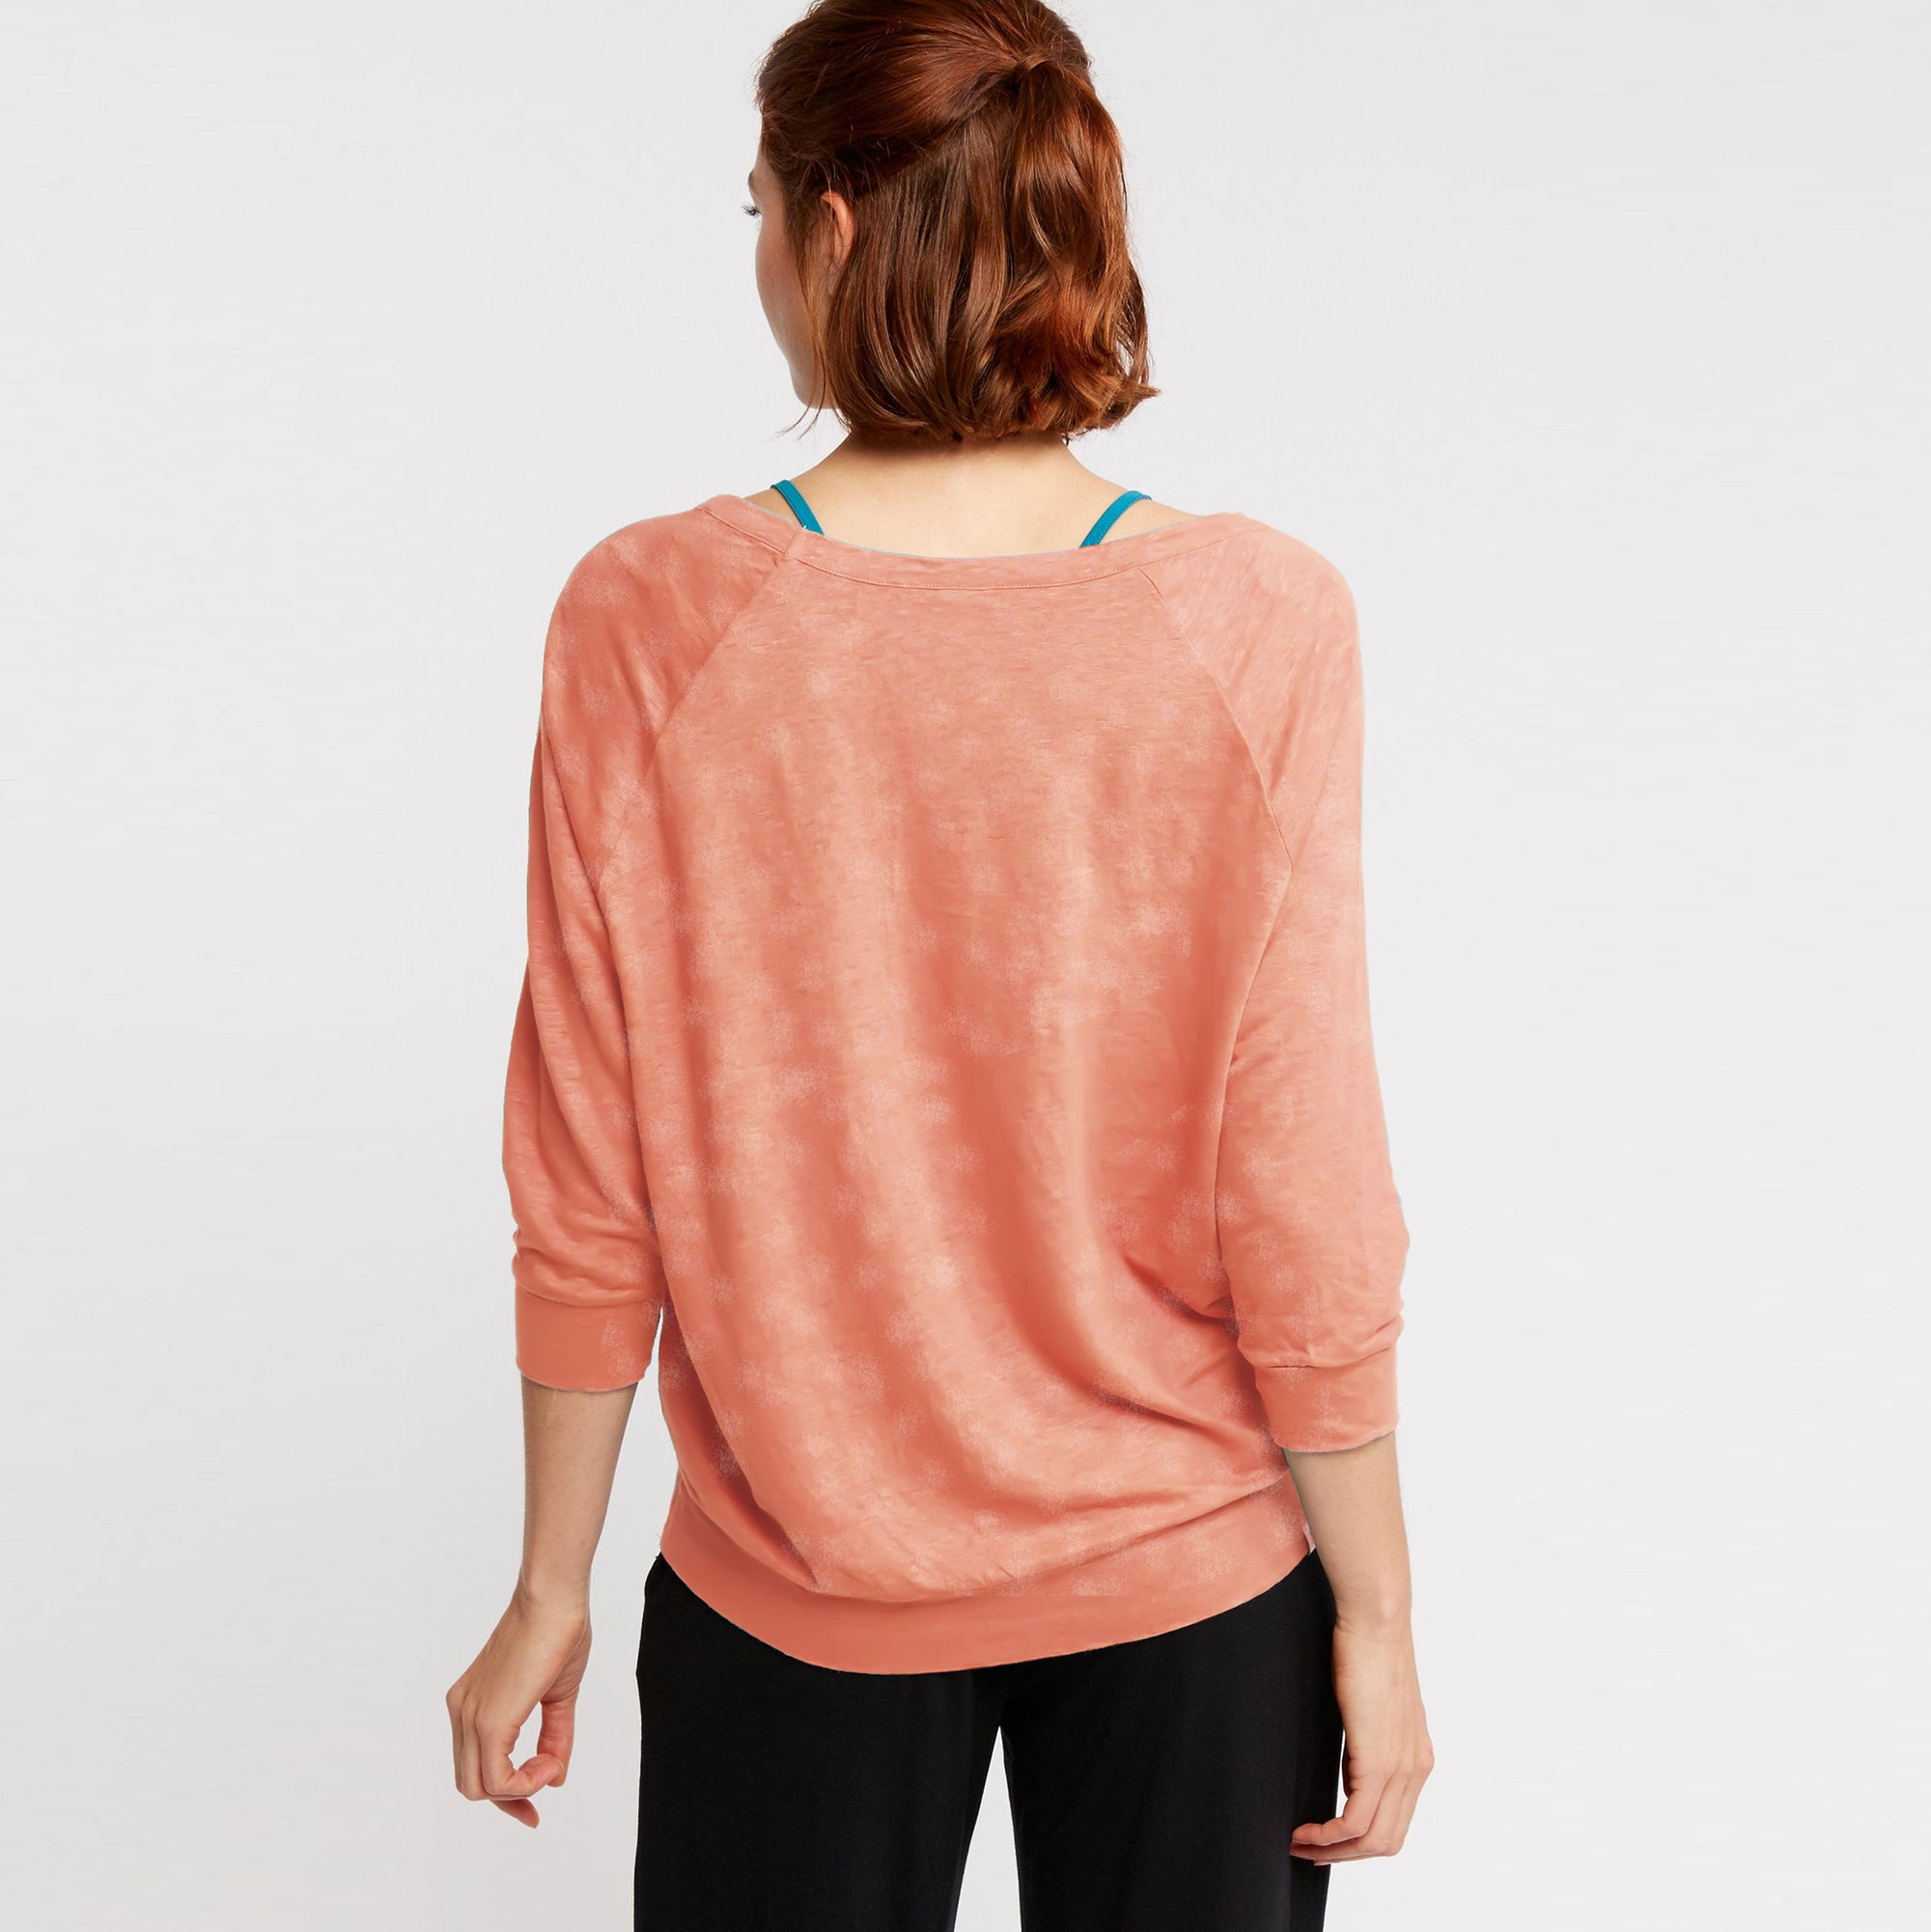 6e756ee21404d1 Fat Face Terry Summer Long Sleeve Stylish Blouse For Ladies-Light Peach  Faded-BE8469